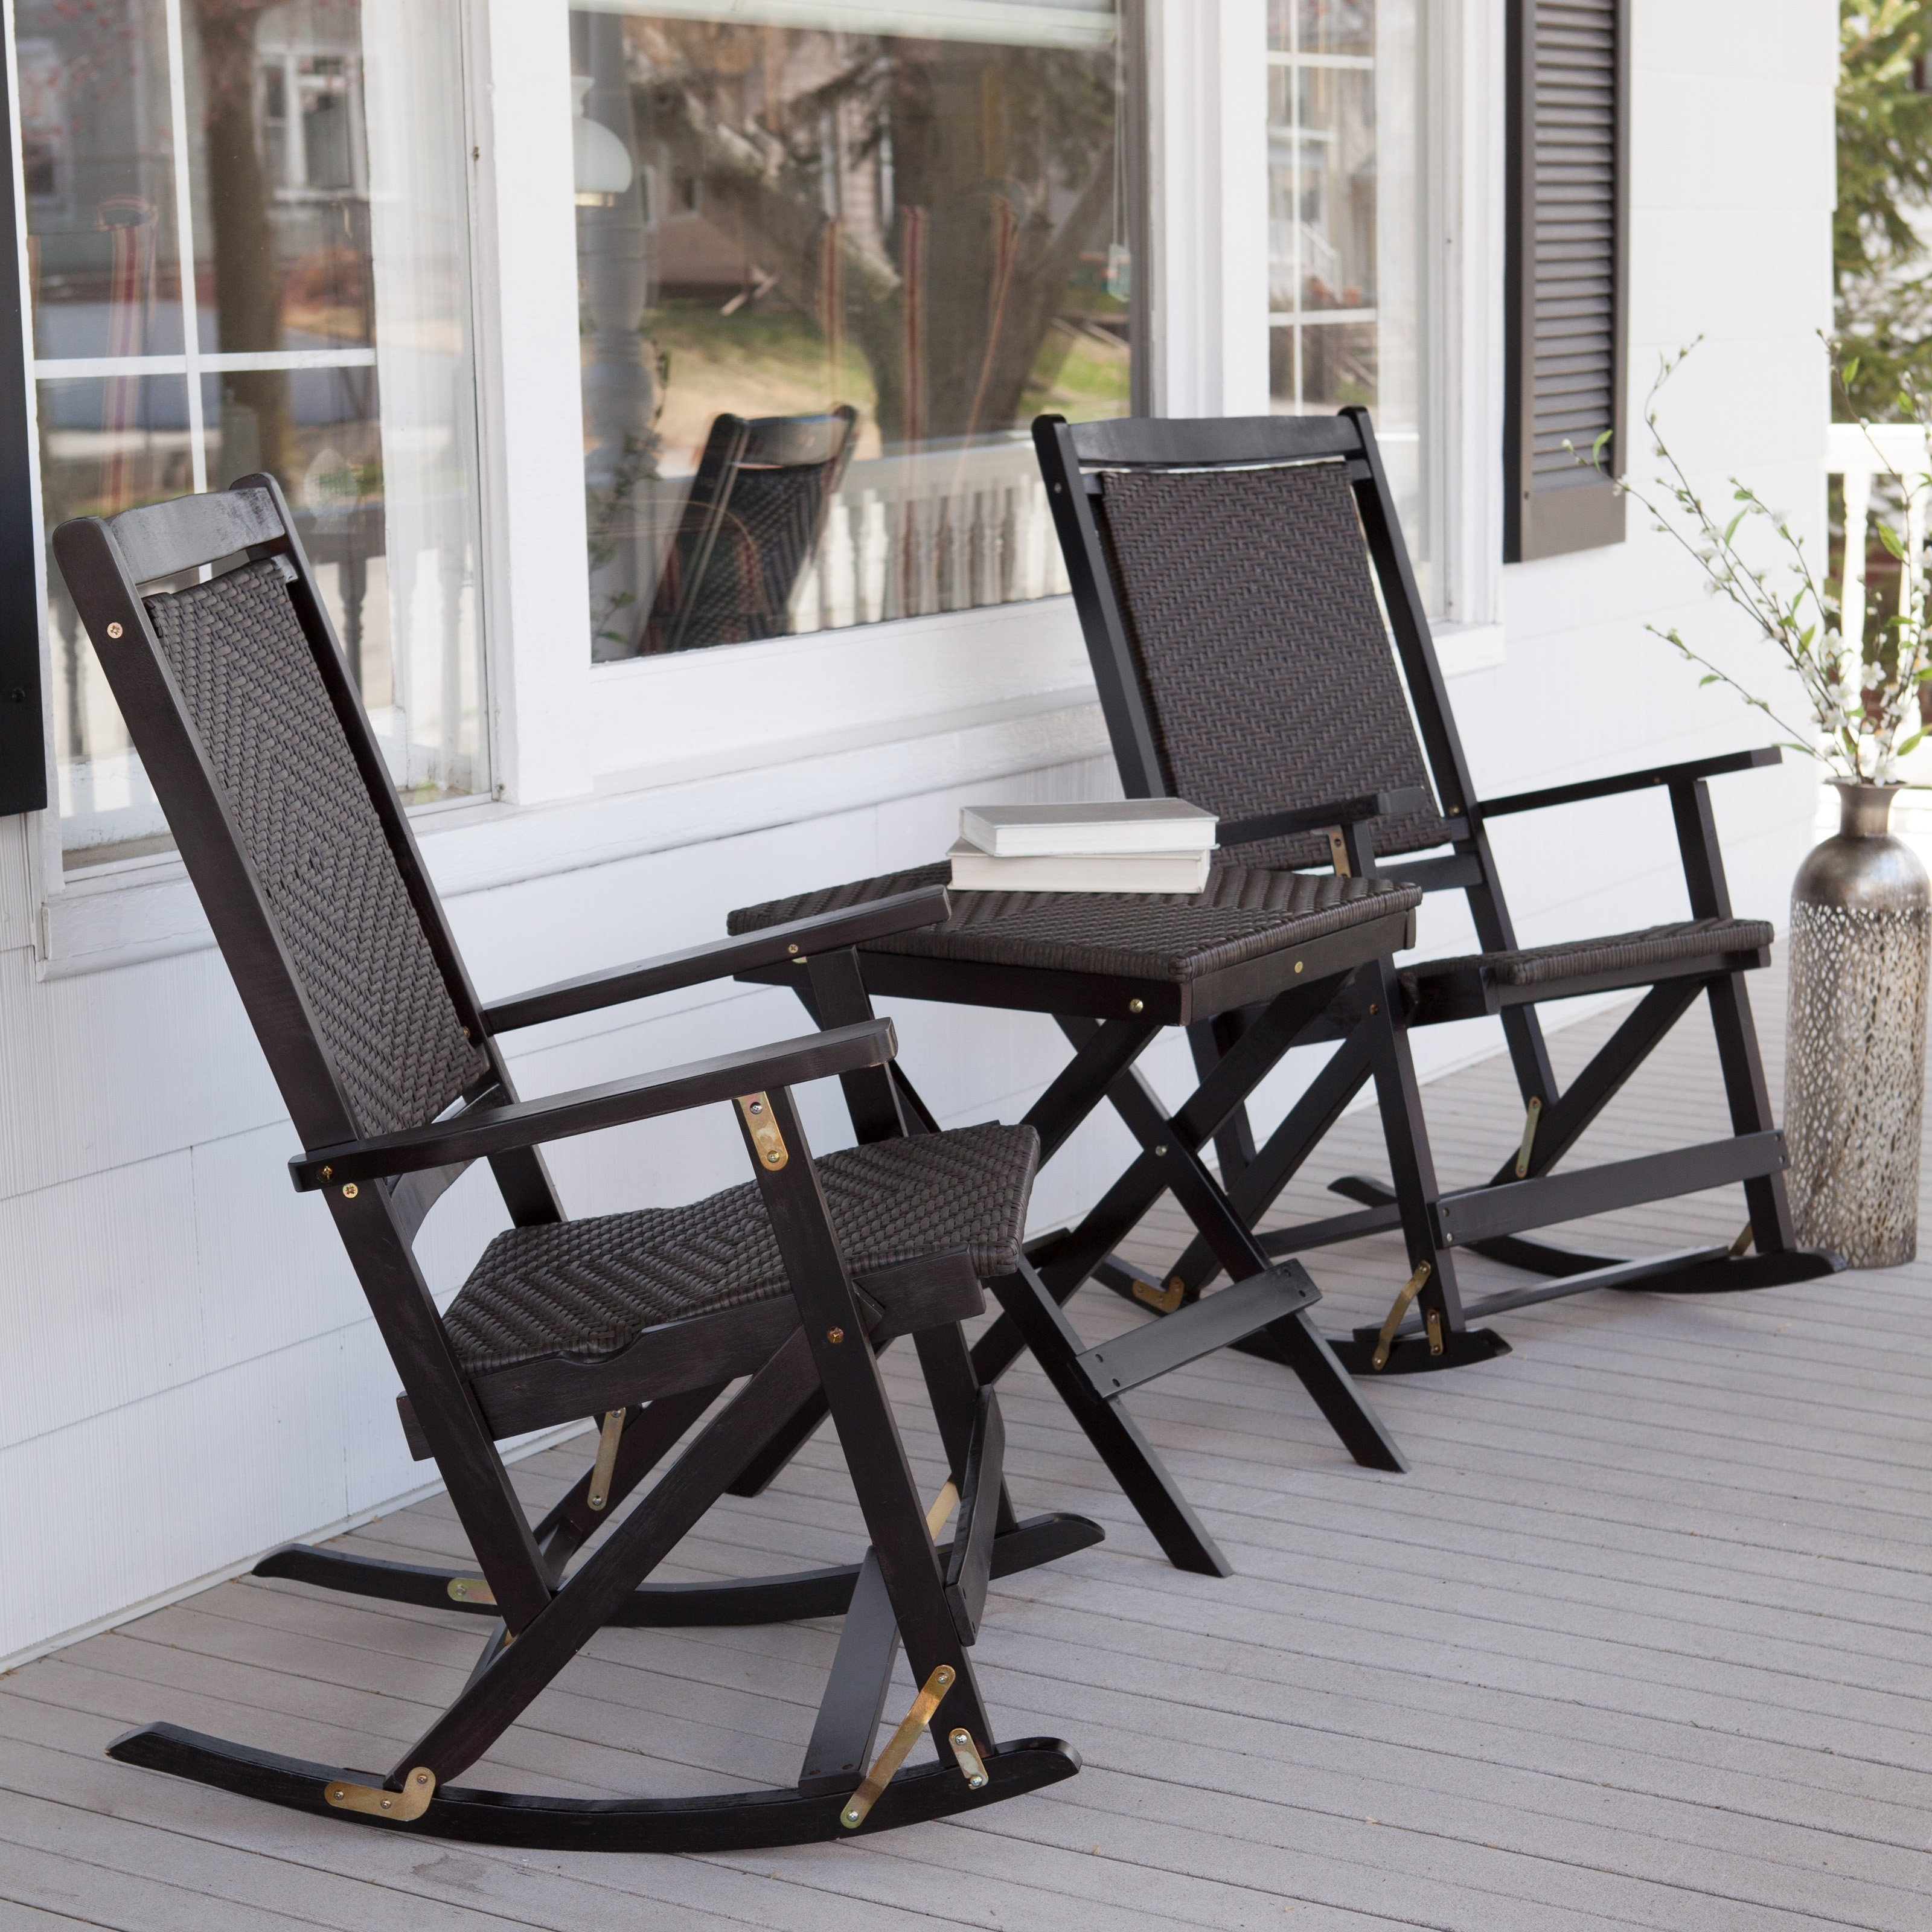 Outdoor Rocking Chairs Home Depot Patio The Good Chair Best Ideas For Preferred Resin Patio Rocking Chairs (View 6 of 15)